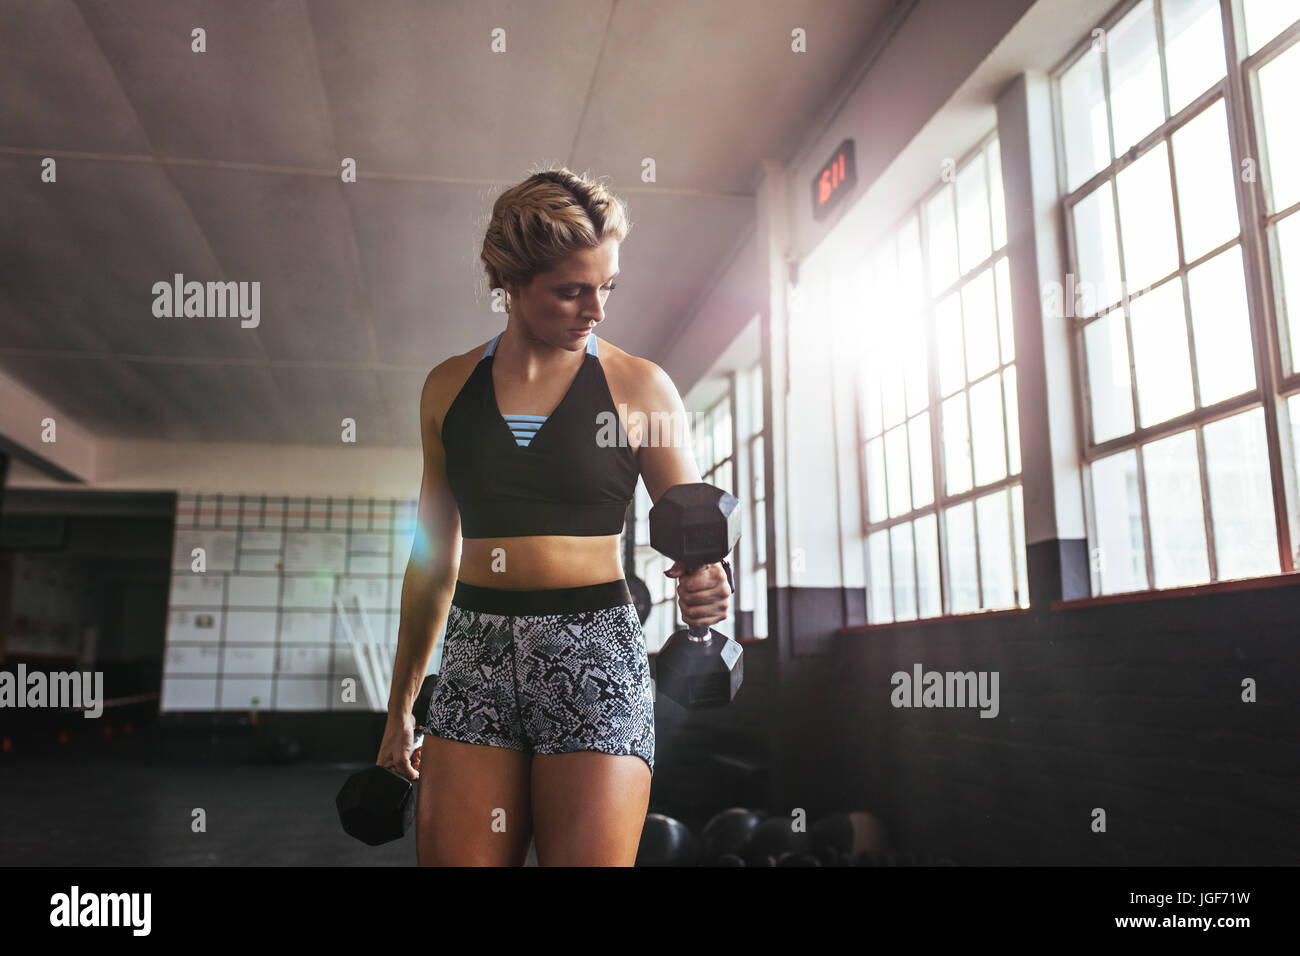 Young woman pumping muscles using dumbbells. Athlete excercising with dumbbells for muscle and strength building. - Stock Image